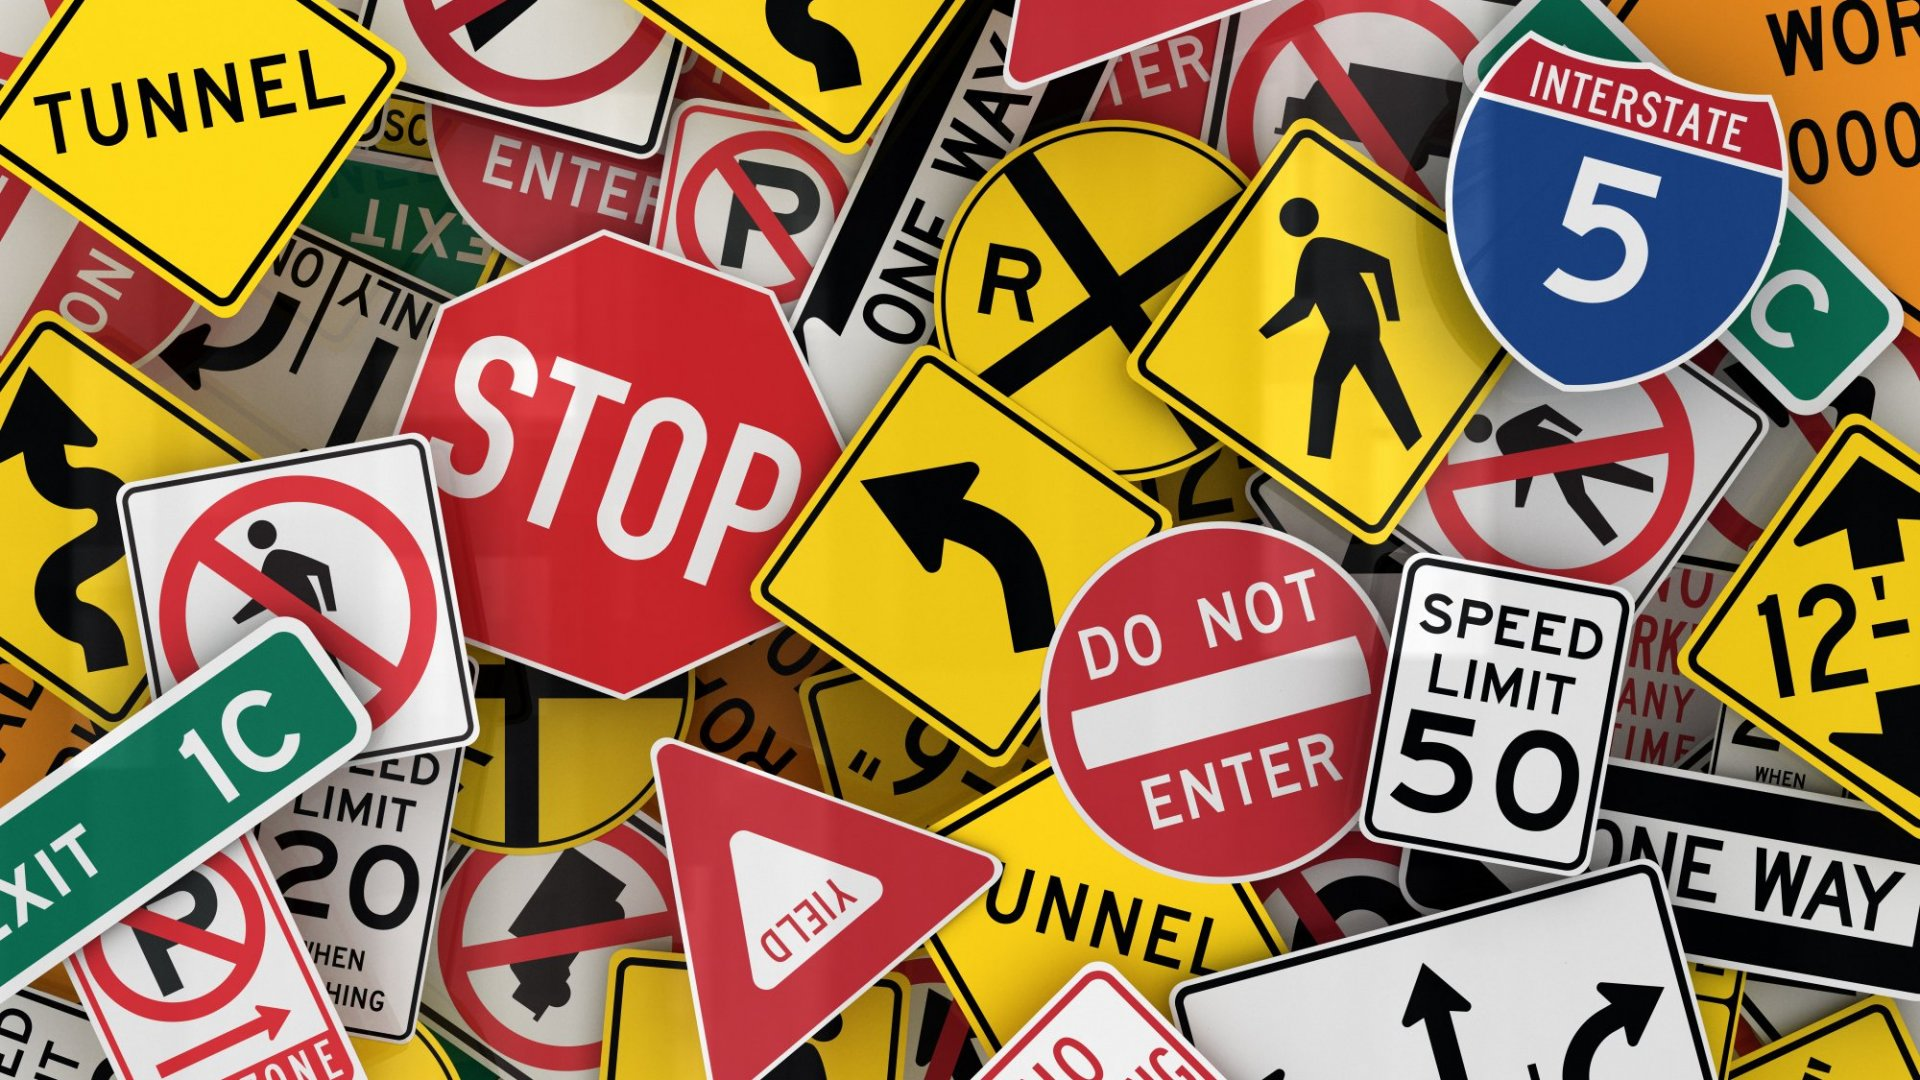 There are lots of signs that tell us what is going on in our business, but only if we are looking for them.